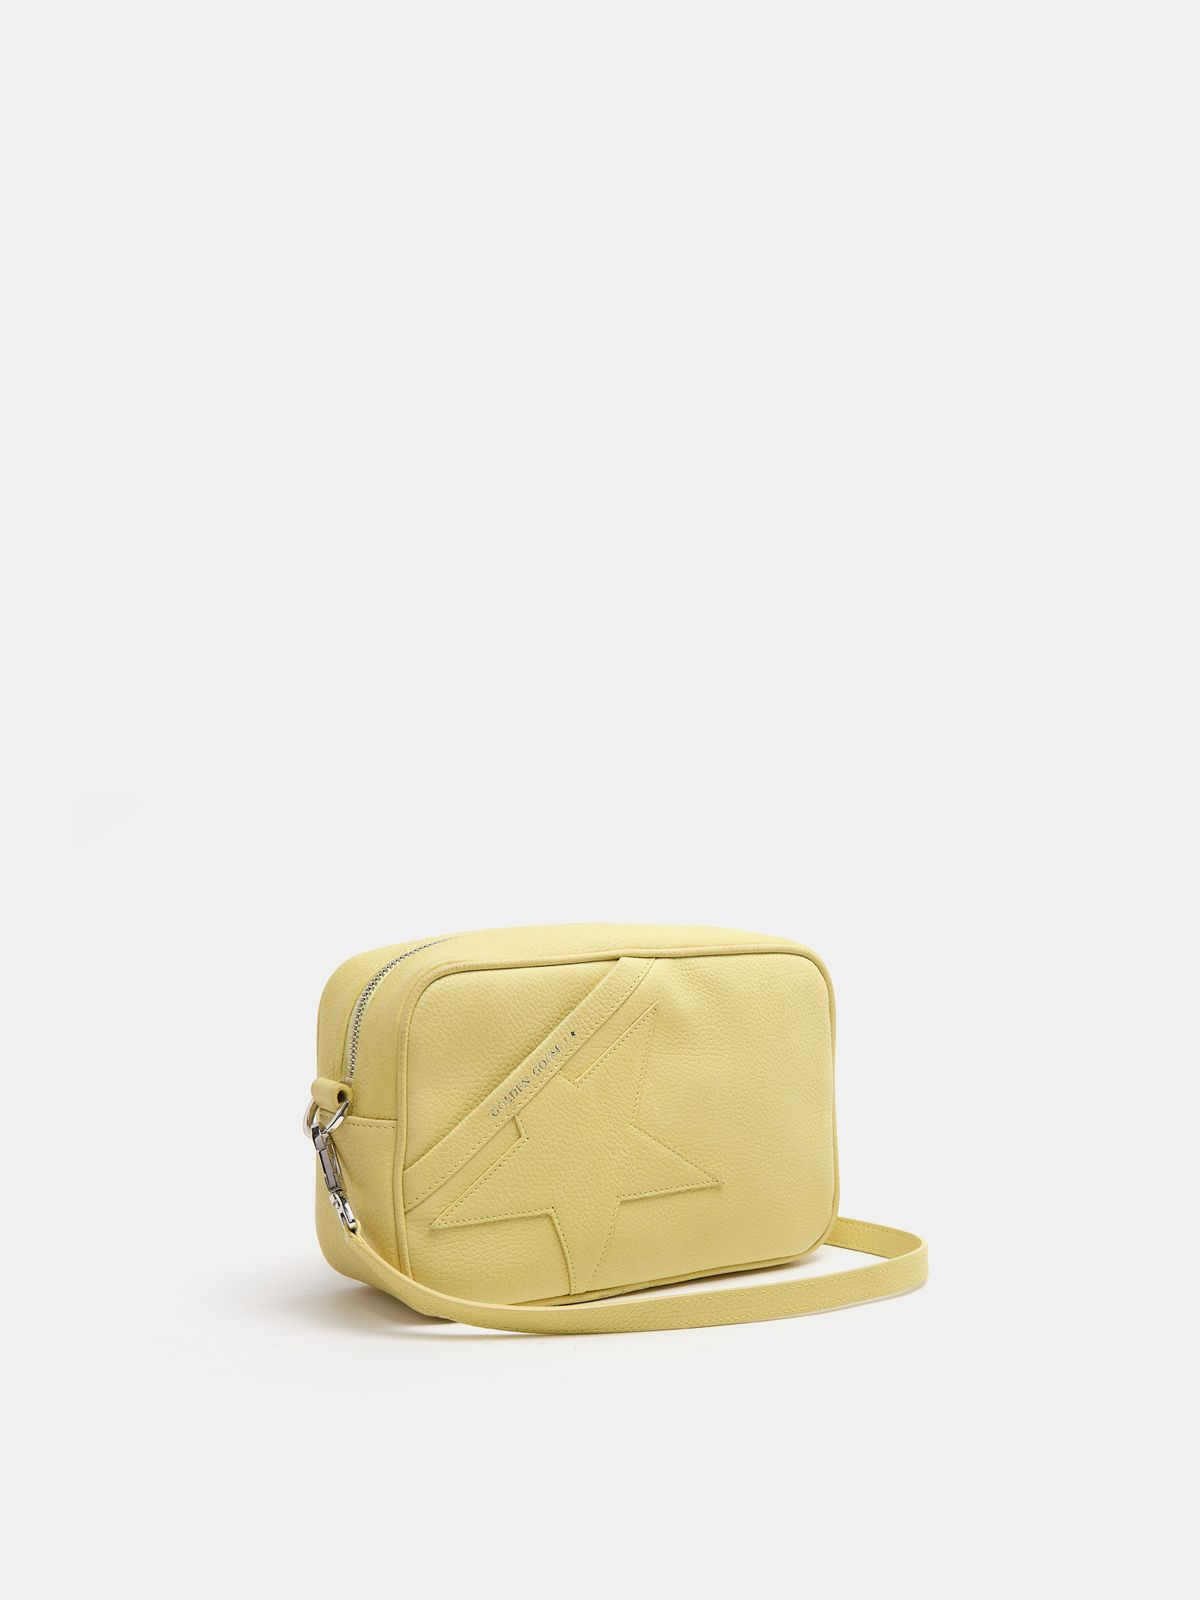 Golden Goose - Borsa Star Bag gialla in pelle martellata in